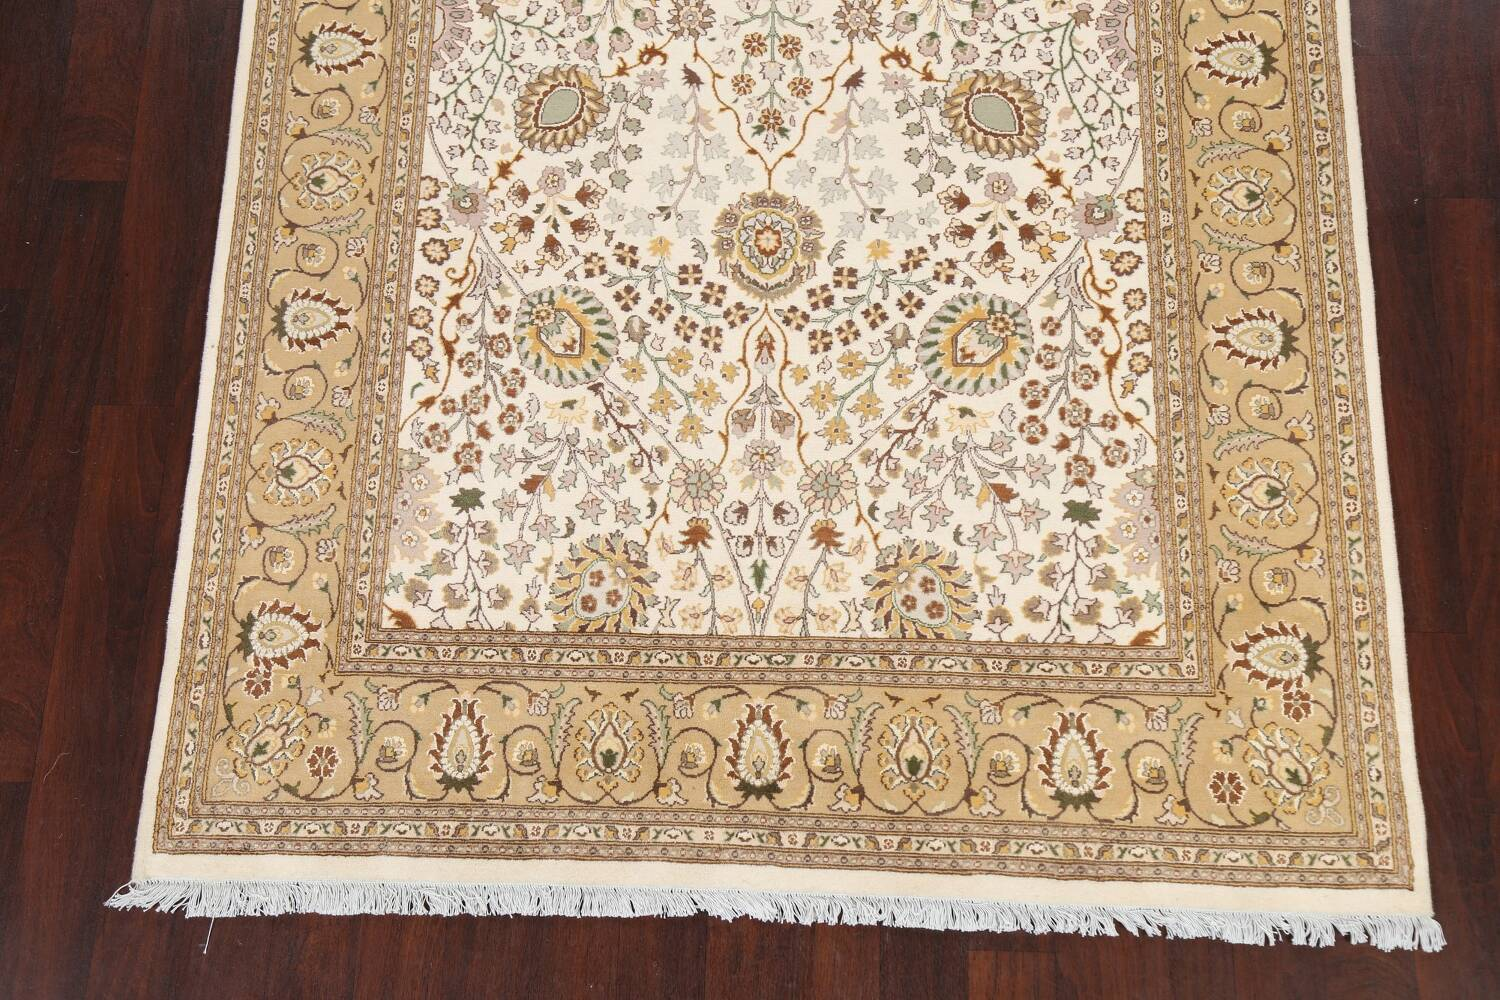 Vegetable Dye Floral Tabriz Oriental Area Rug 6x9 image 5